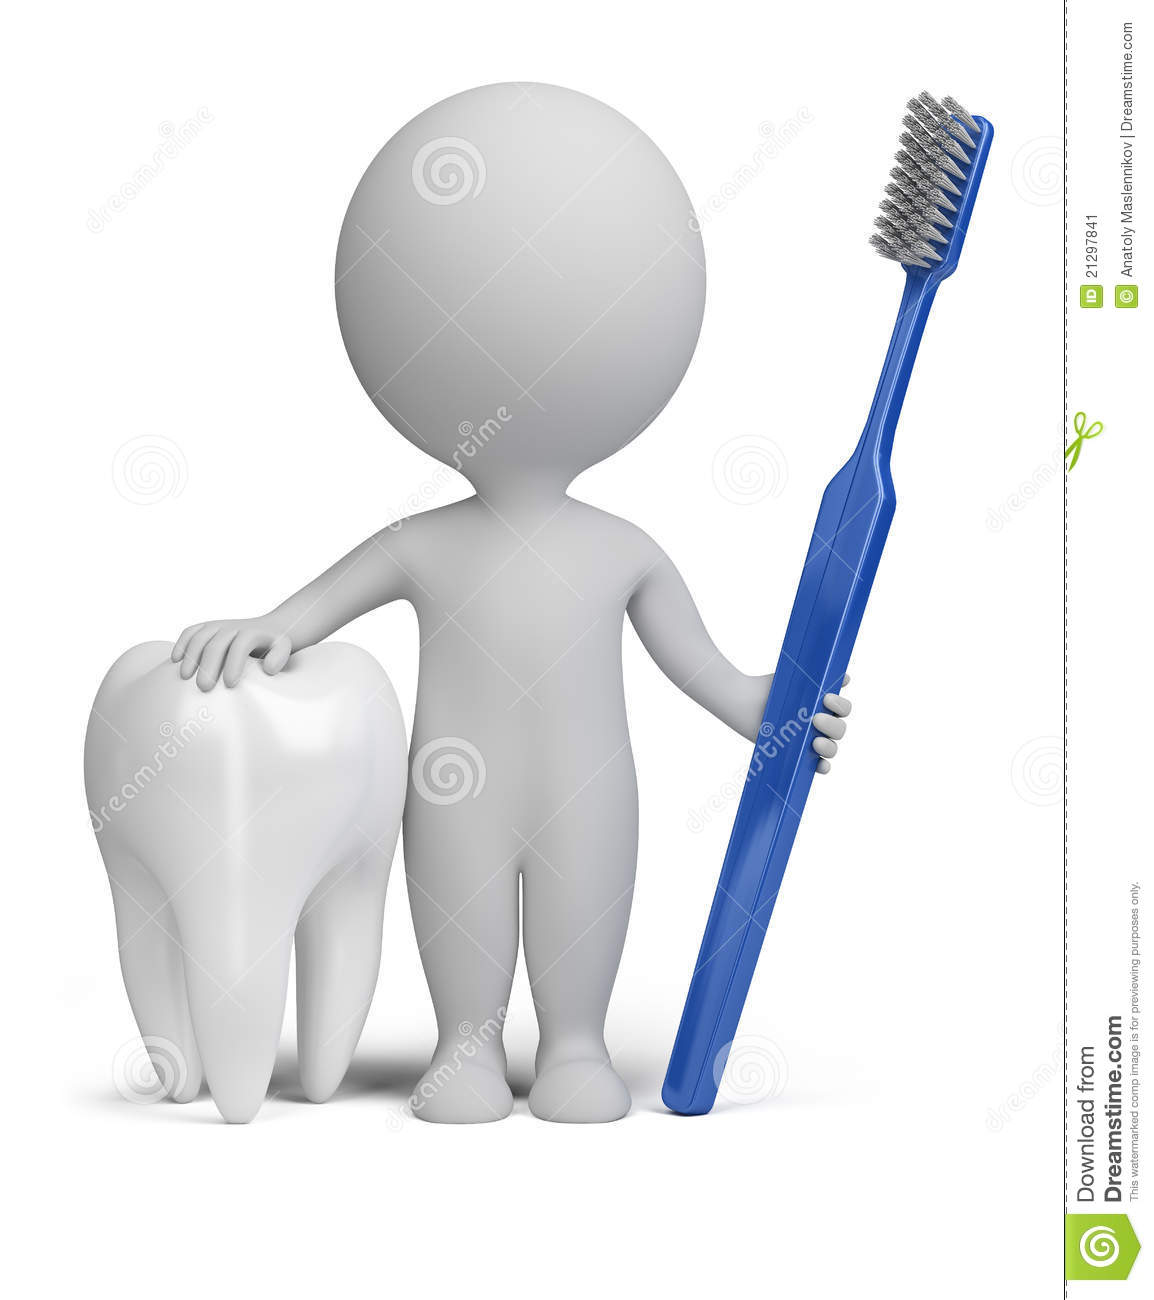 Dentist 719991 additionally Word Cloud For Hygiene 11664015 additionally Motorcycle Helmet Plastic Release Buckle Slider Clip Fastener further Car Engine Undertray Cover Clips Bottom Shield Guard Screws For Toyota Avensis as well Dentist Vector Icons Set 721855. on oral care clip art